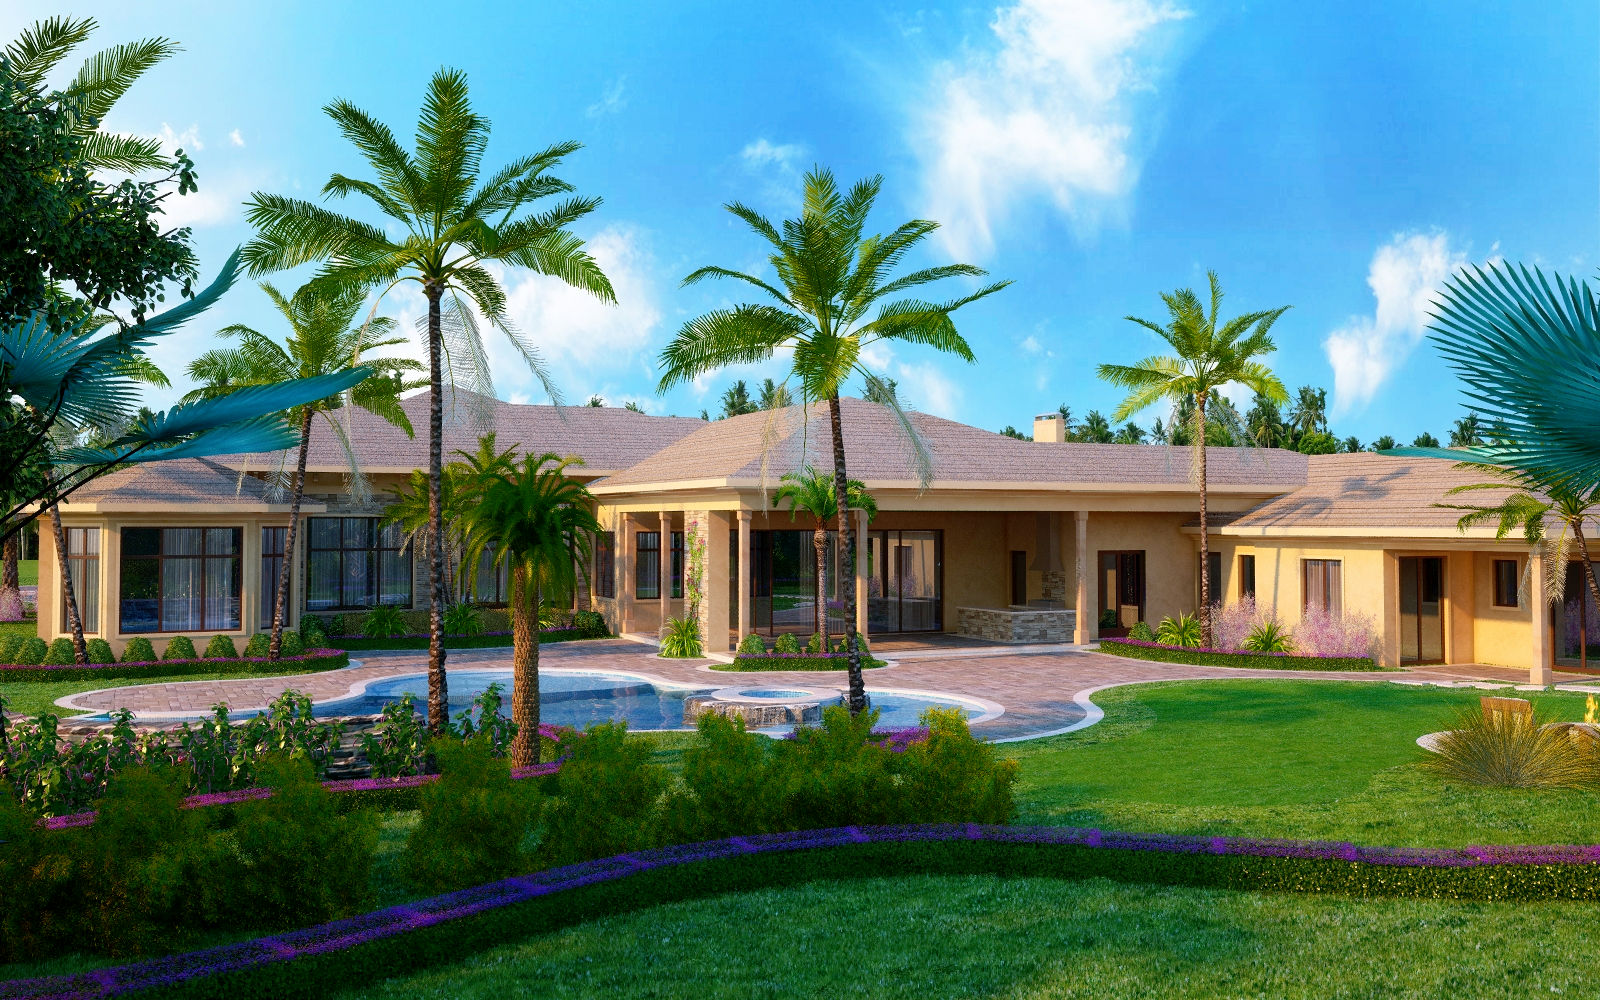 Florida miami beach housing offers signs of shakiness n for Beach house plans usa